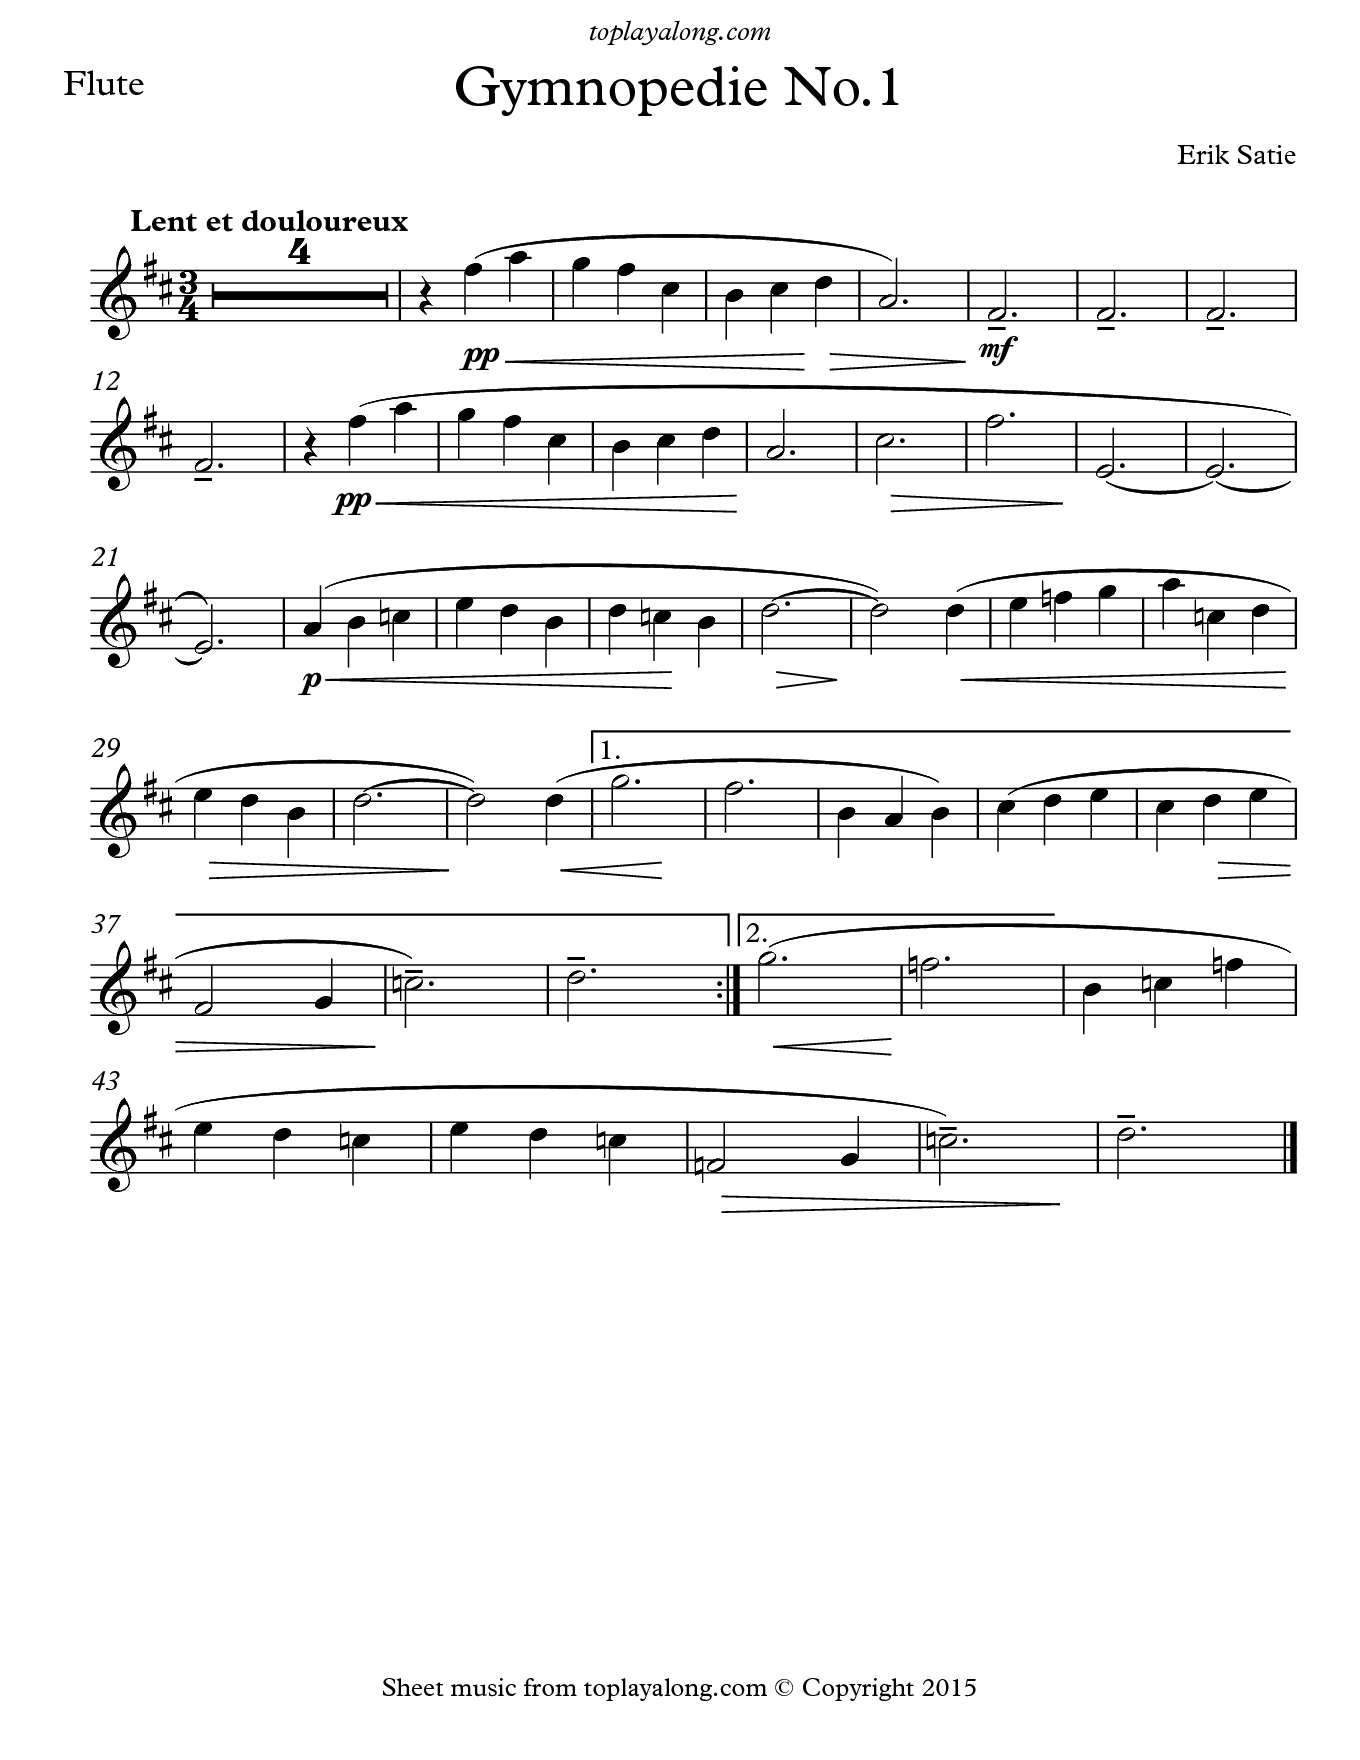 Gymnopédie No. 1 by Satie. Sheet music for Flute, page 1.